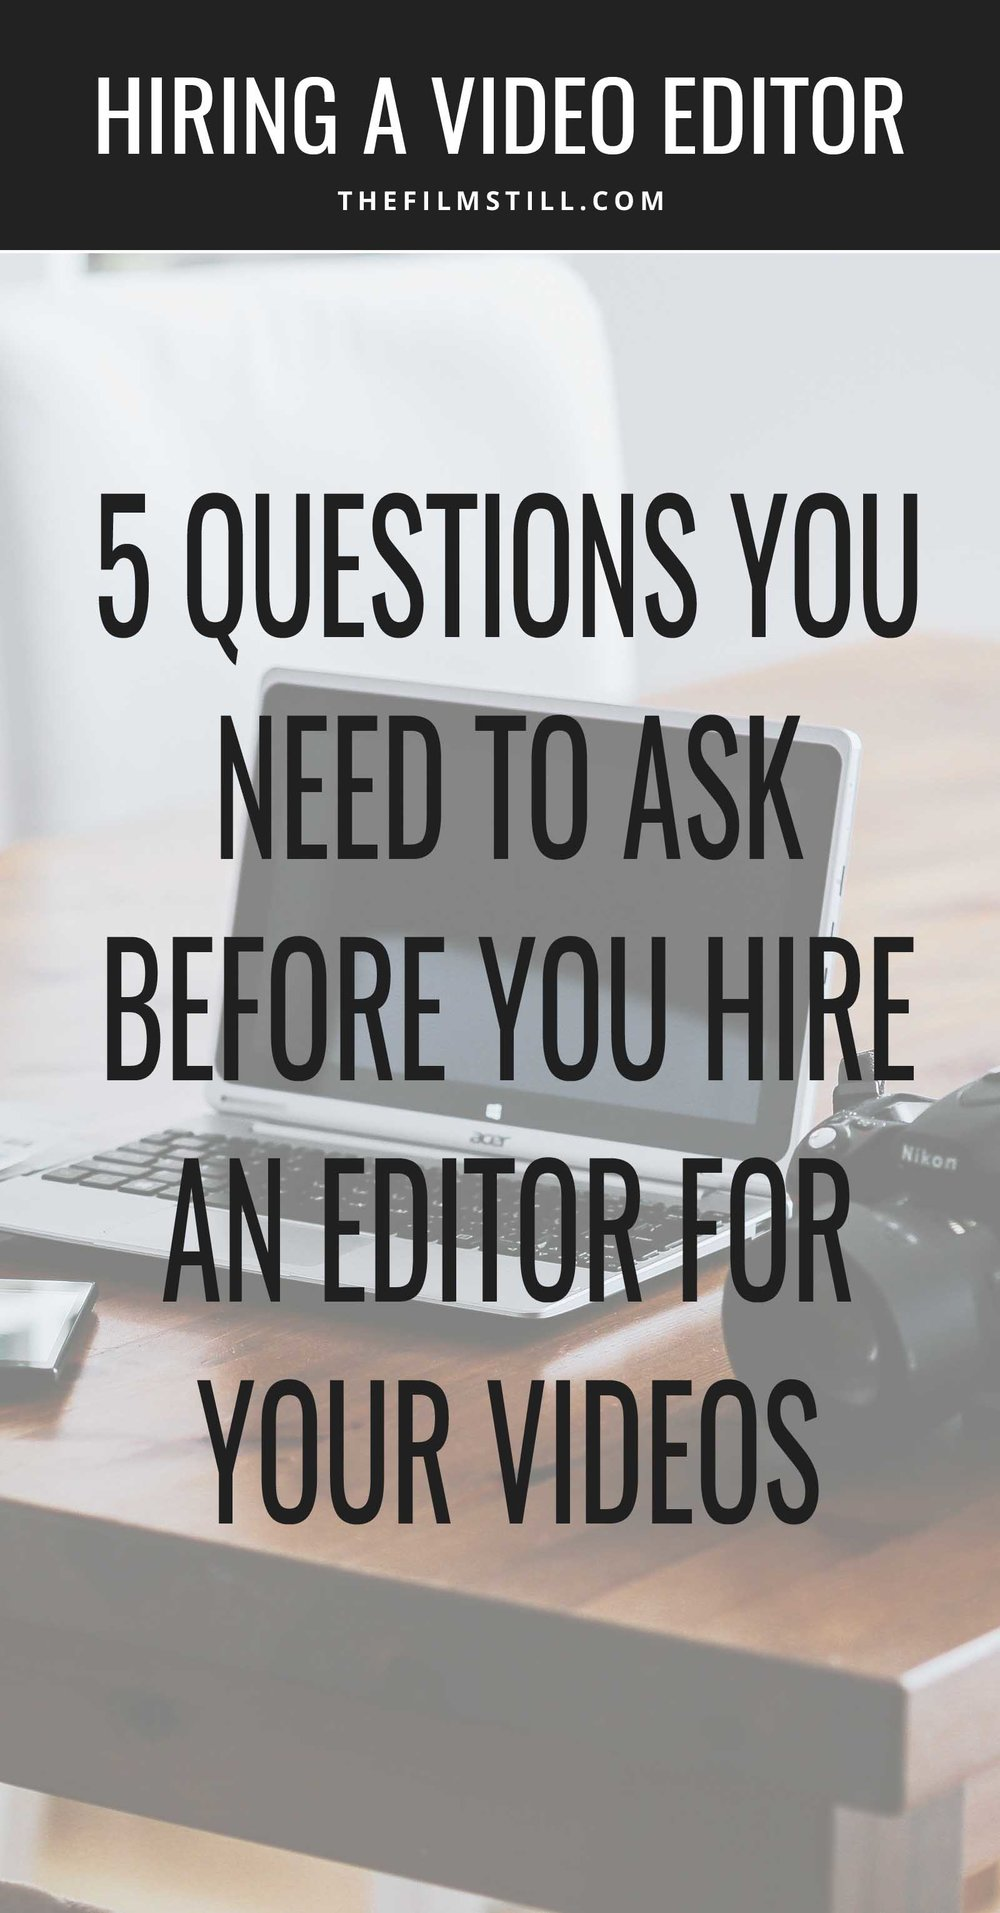 A photo of a computer and camera linking to an article explaining how to hire a video editor.